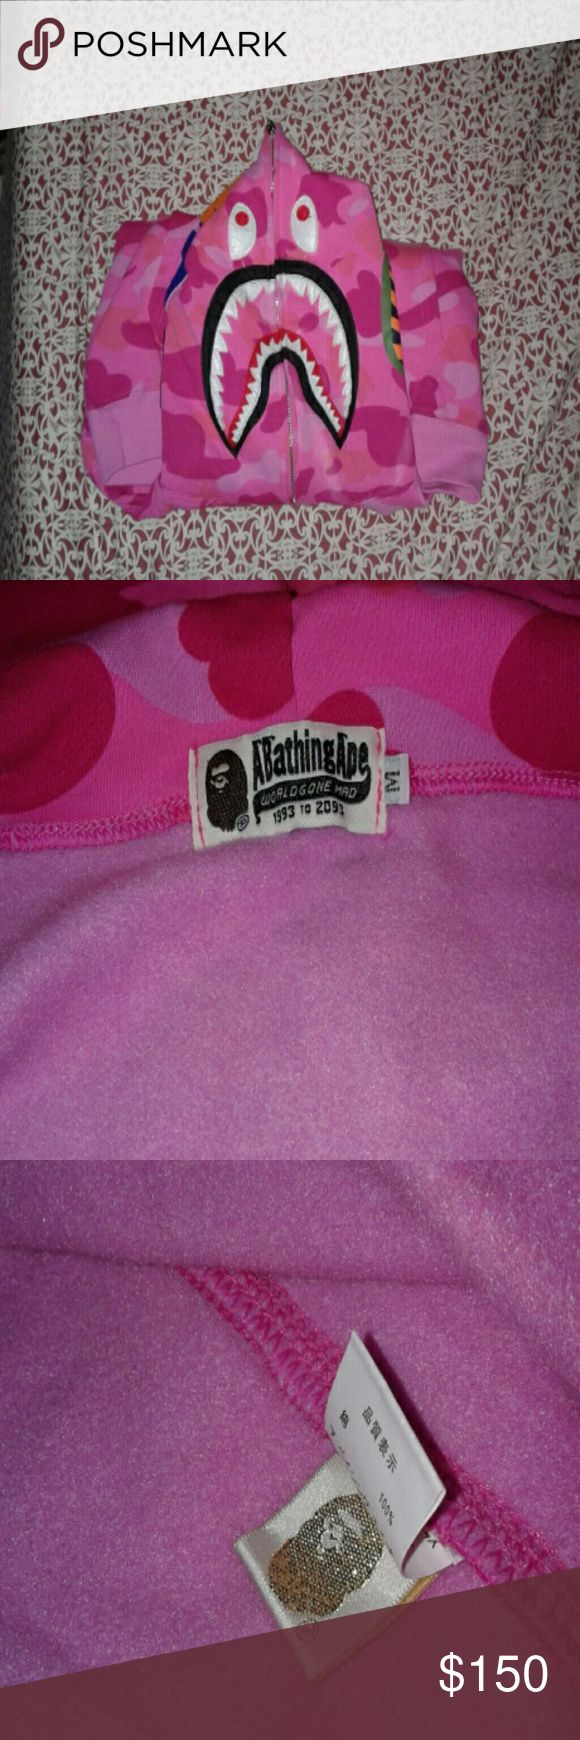 A Bathing Ape hoodie Bathing Ape Pink camo Bape  Jackets & Coats